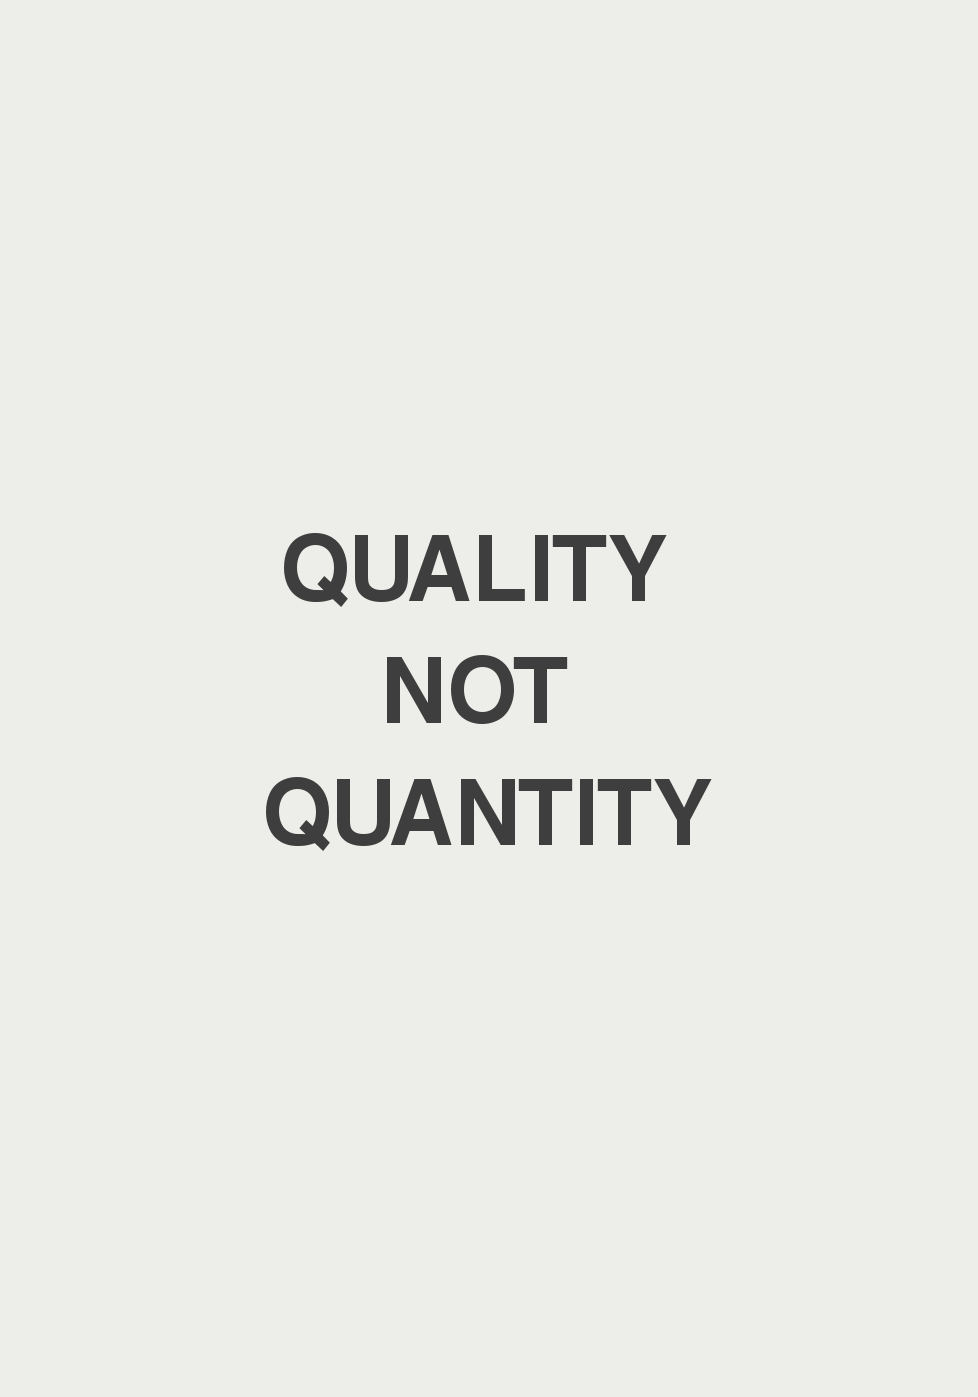 Quotes about quantity over quality